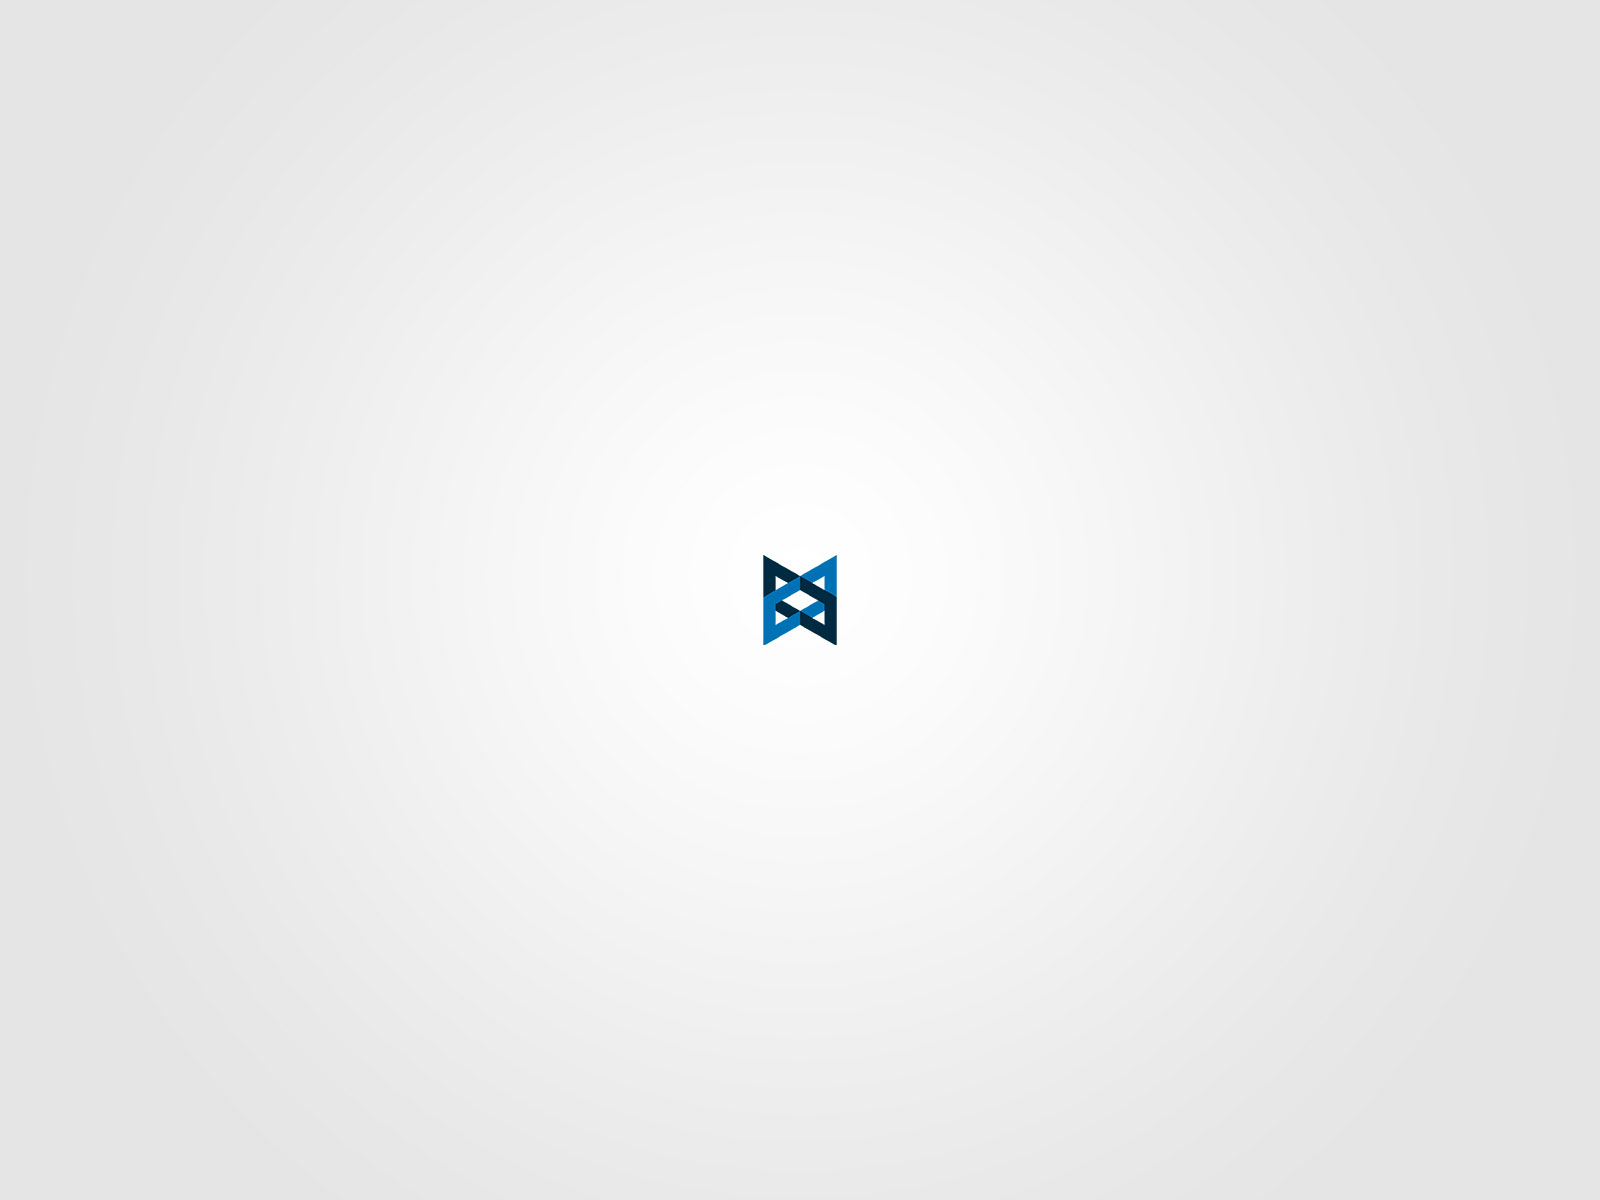 Minimal backbone js wallpaper by synetcon on deviantart for Deviantart minimal wallpaper